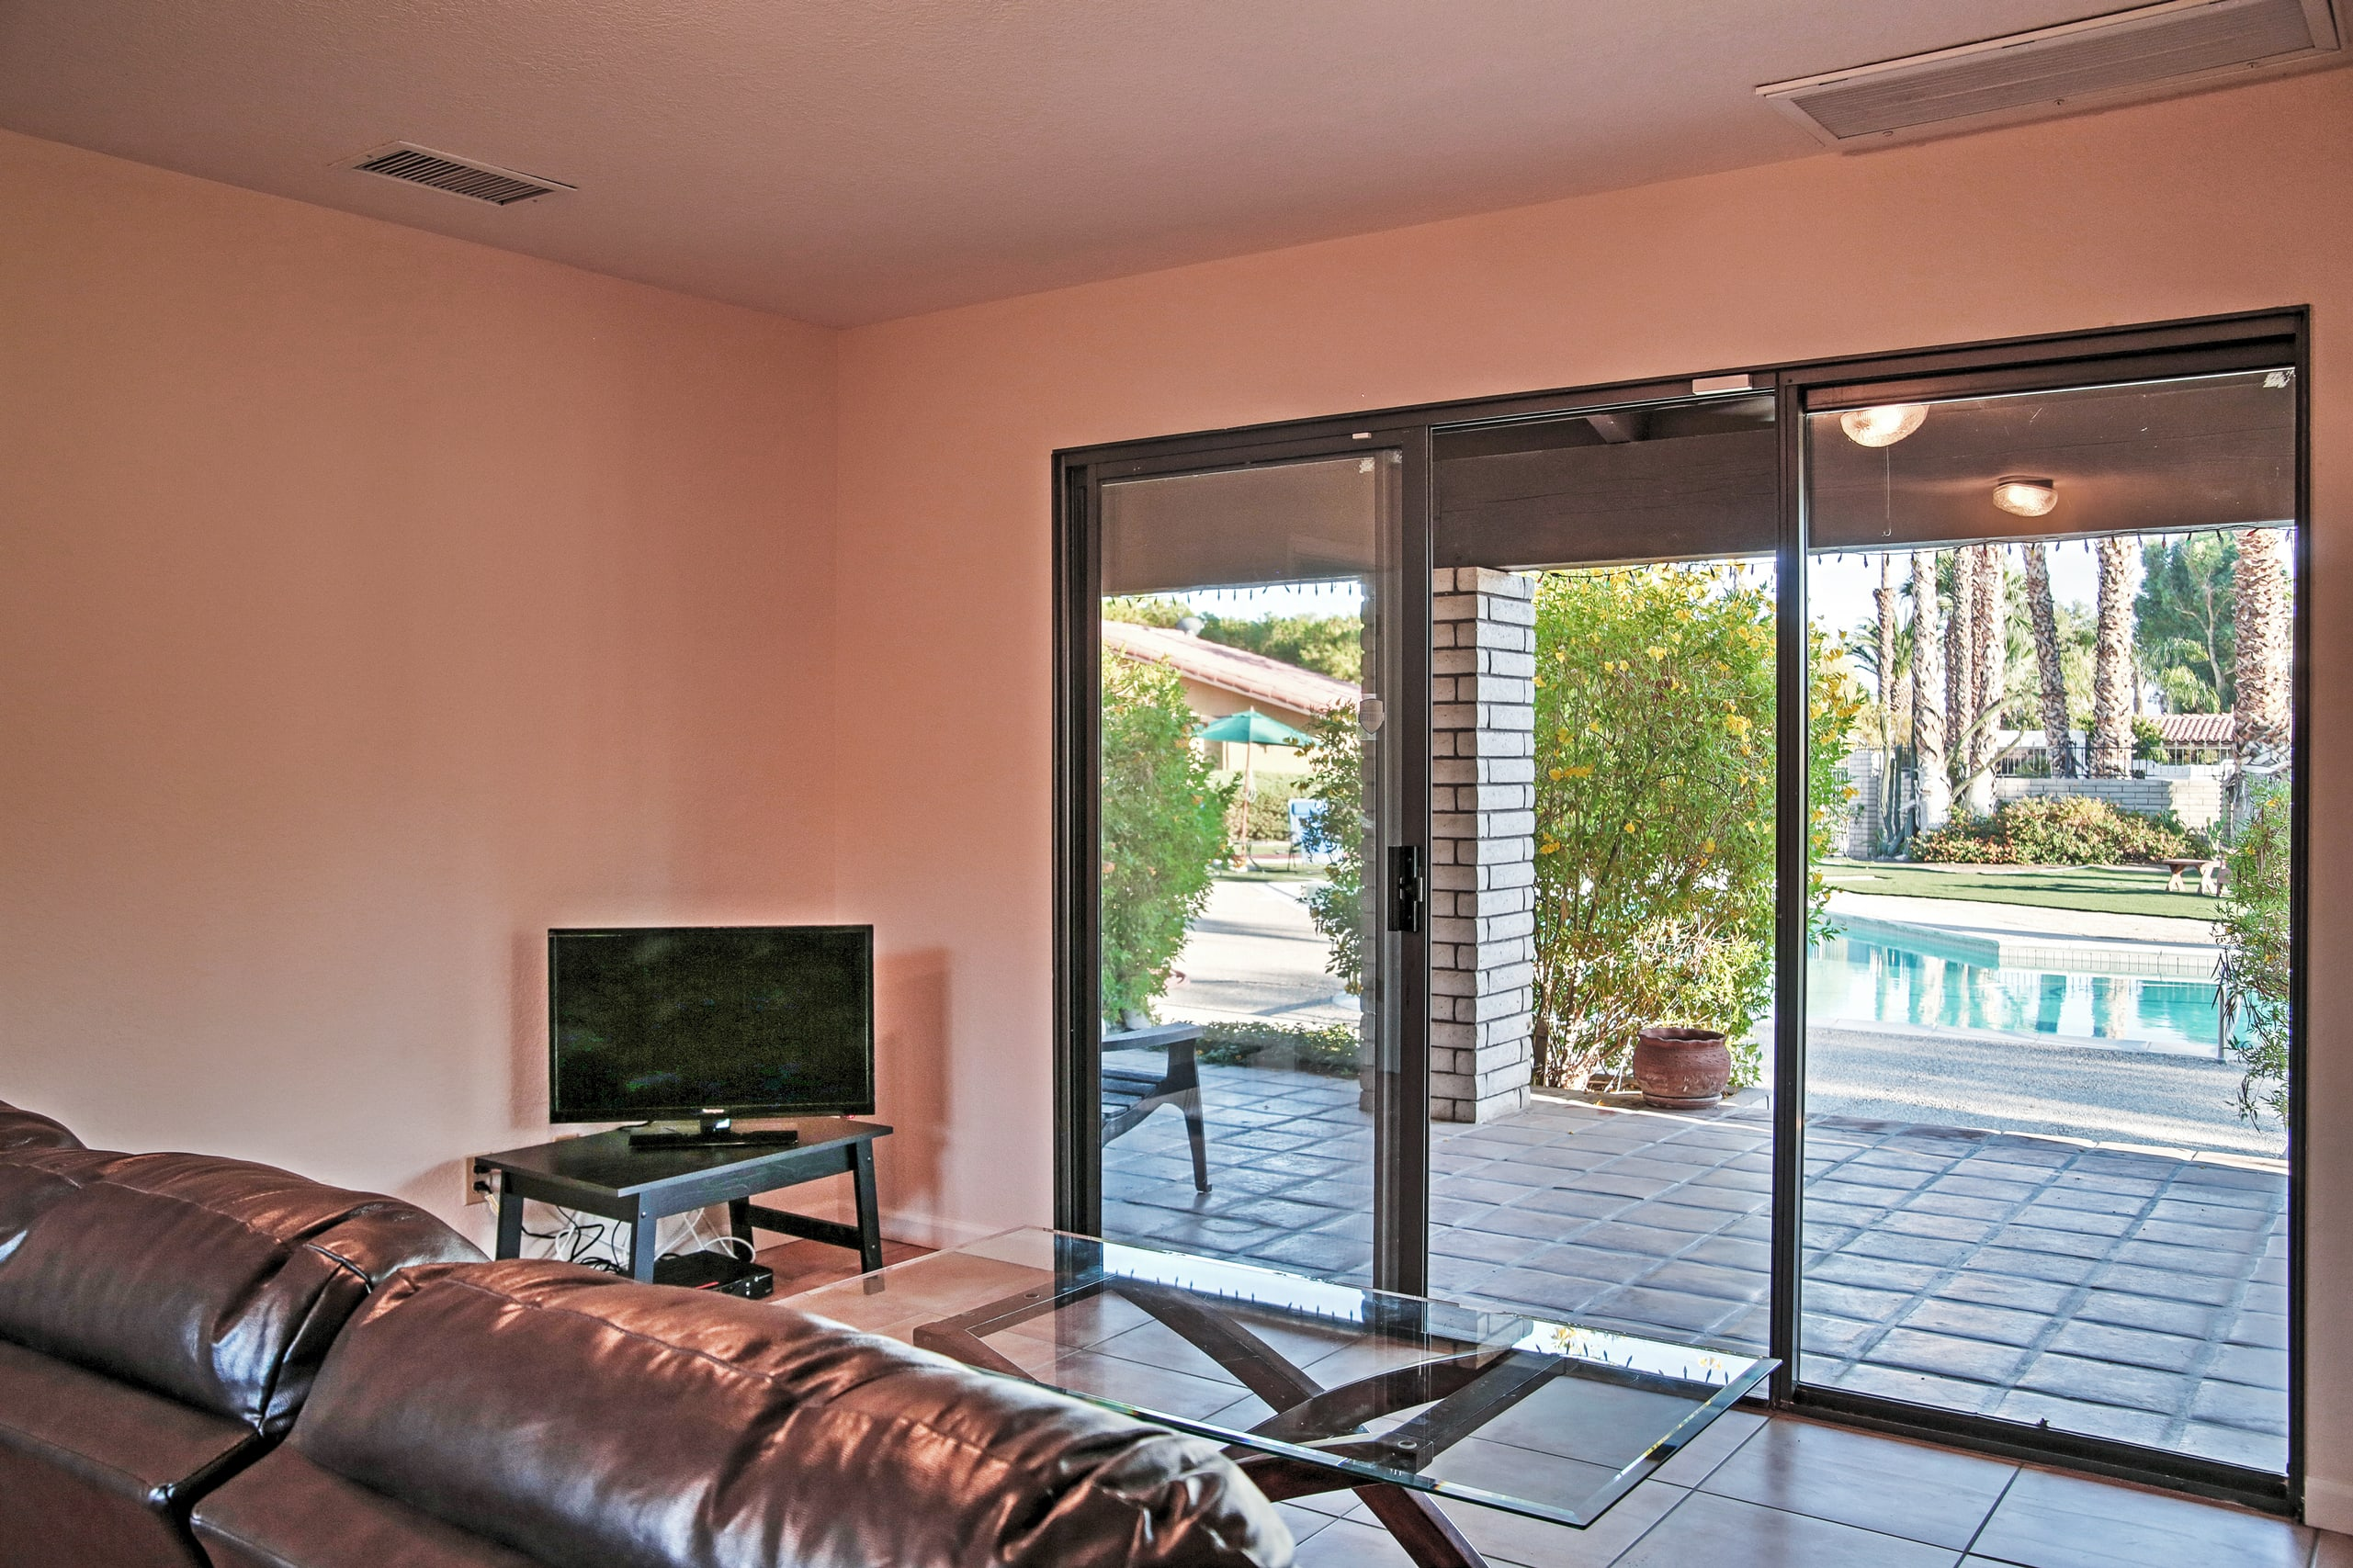 Step right through the sliding doors to get fresh air outside.